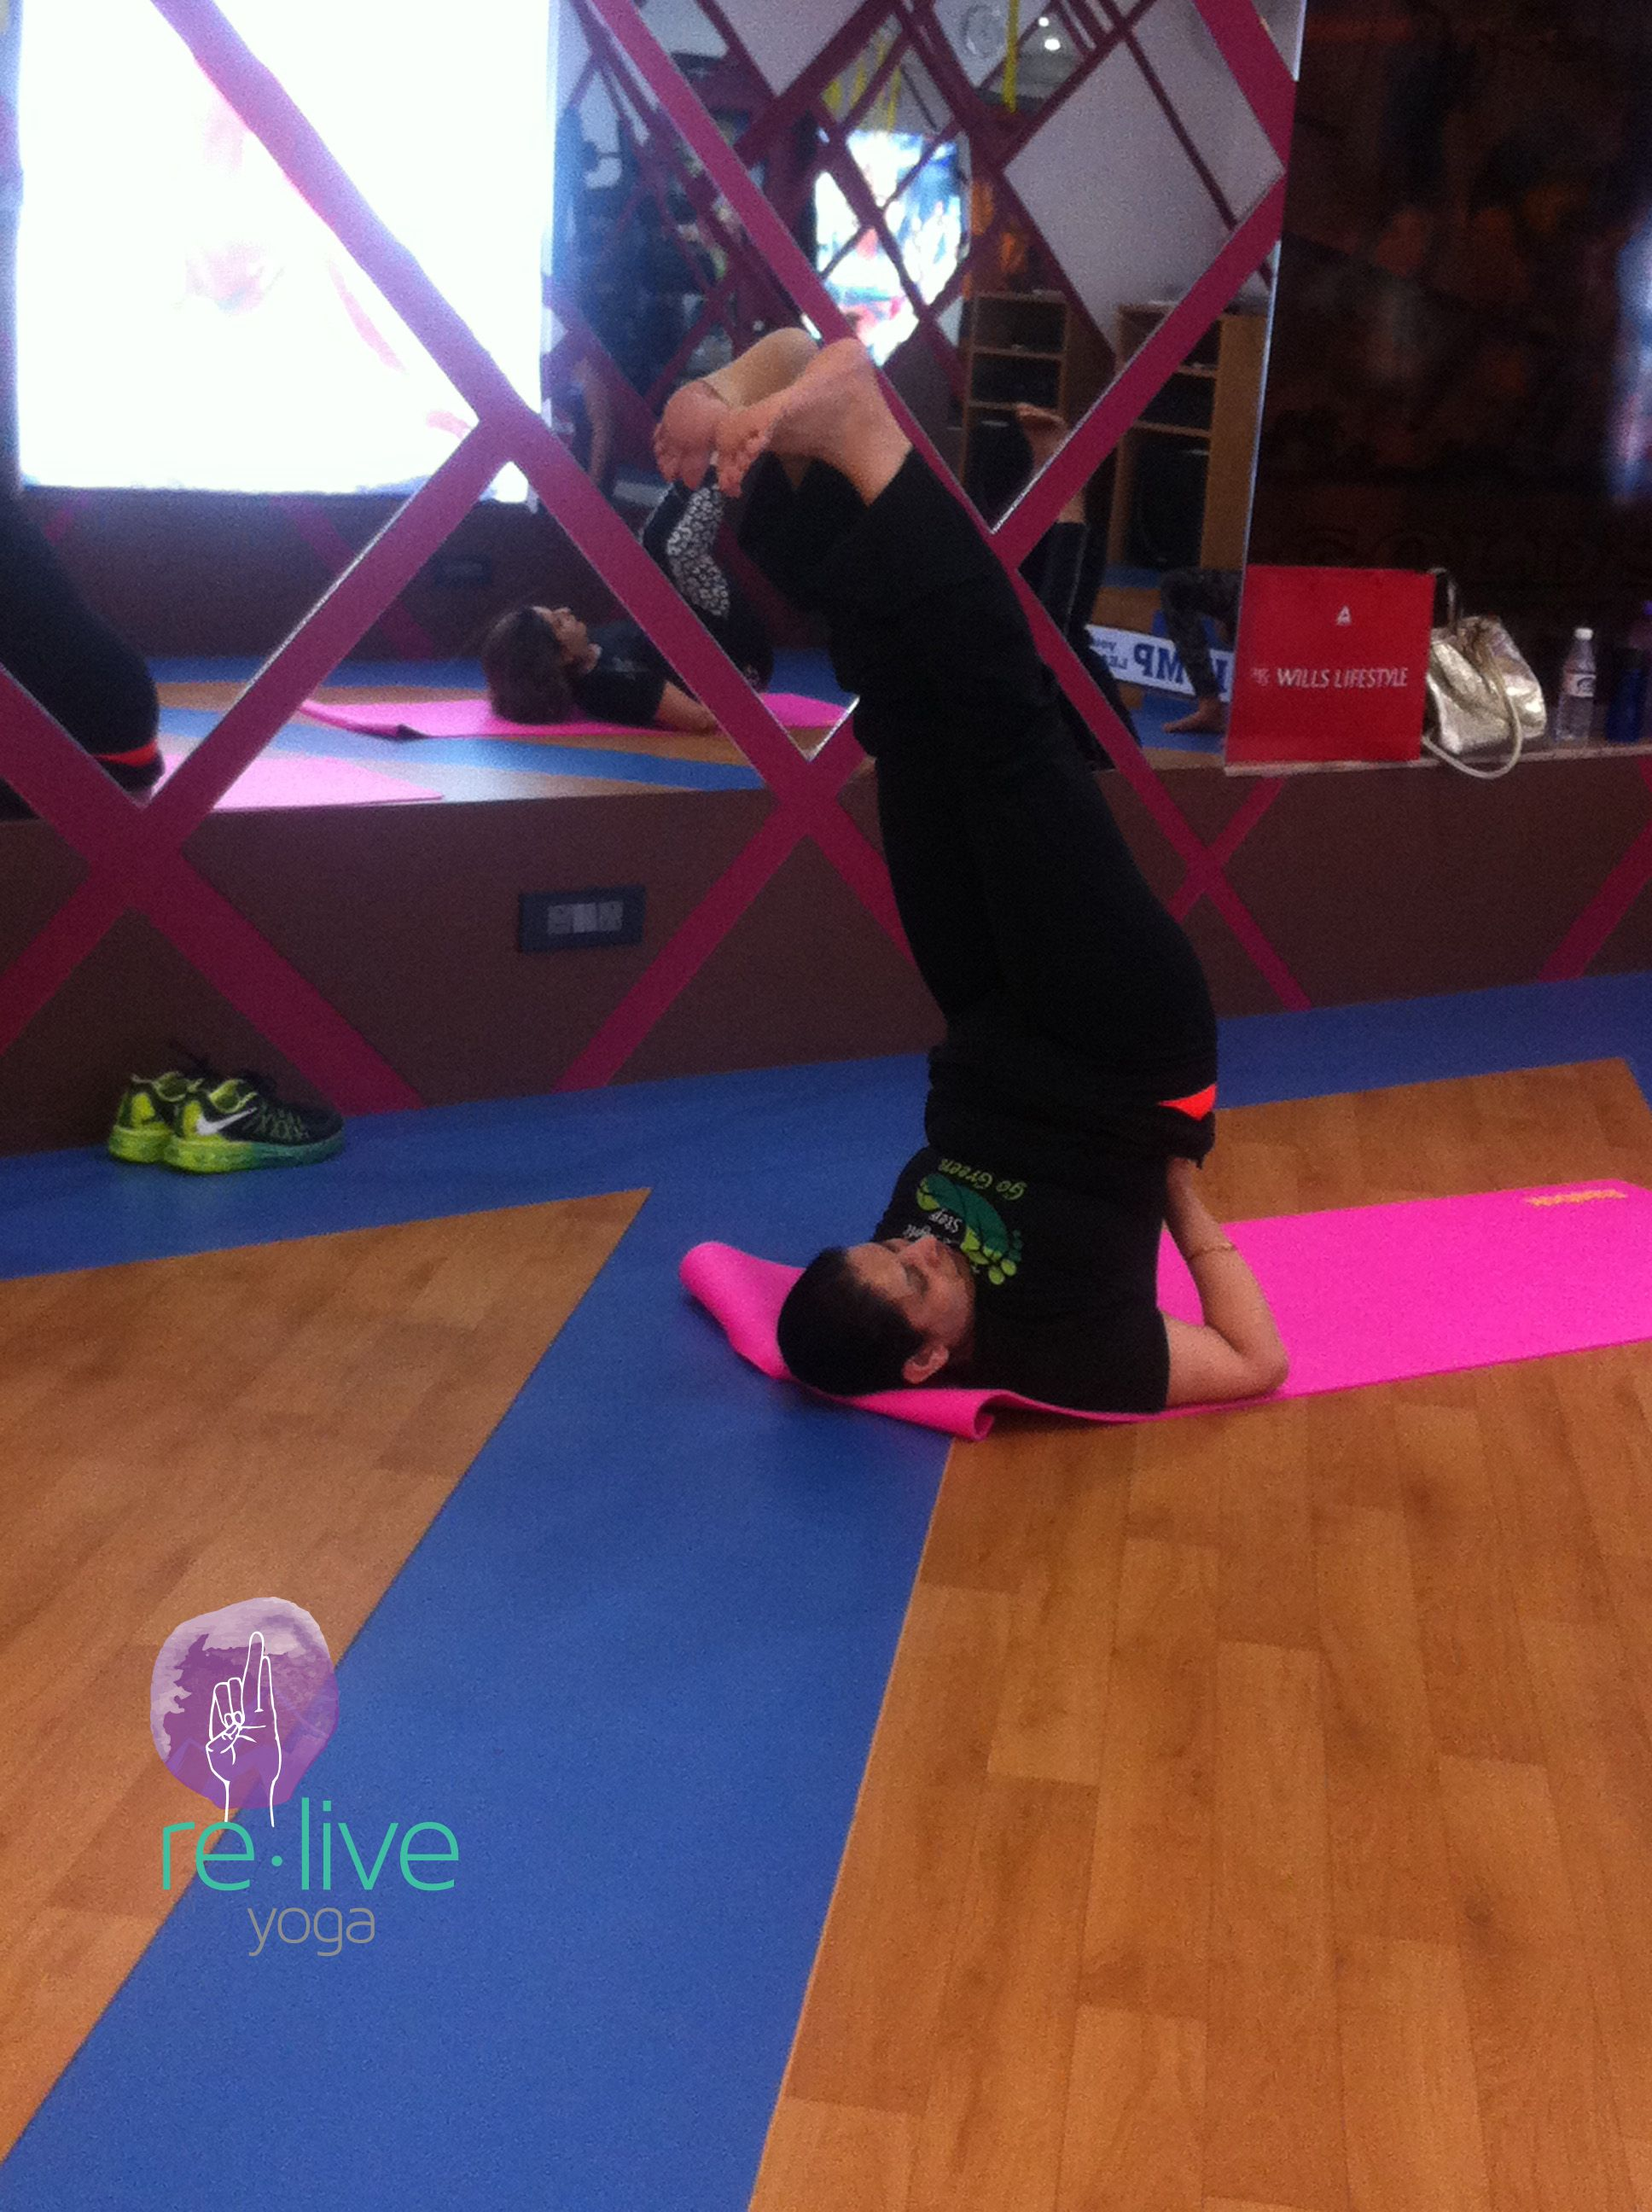 Pin by Re.liveyoga on Free Yoga Session Gold's Gym (2nd